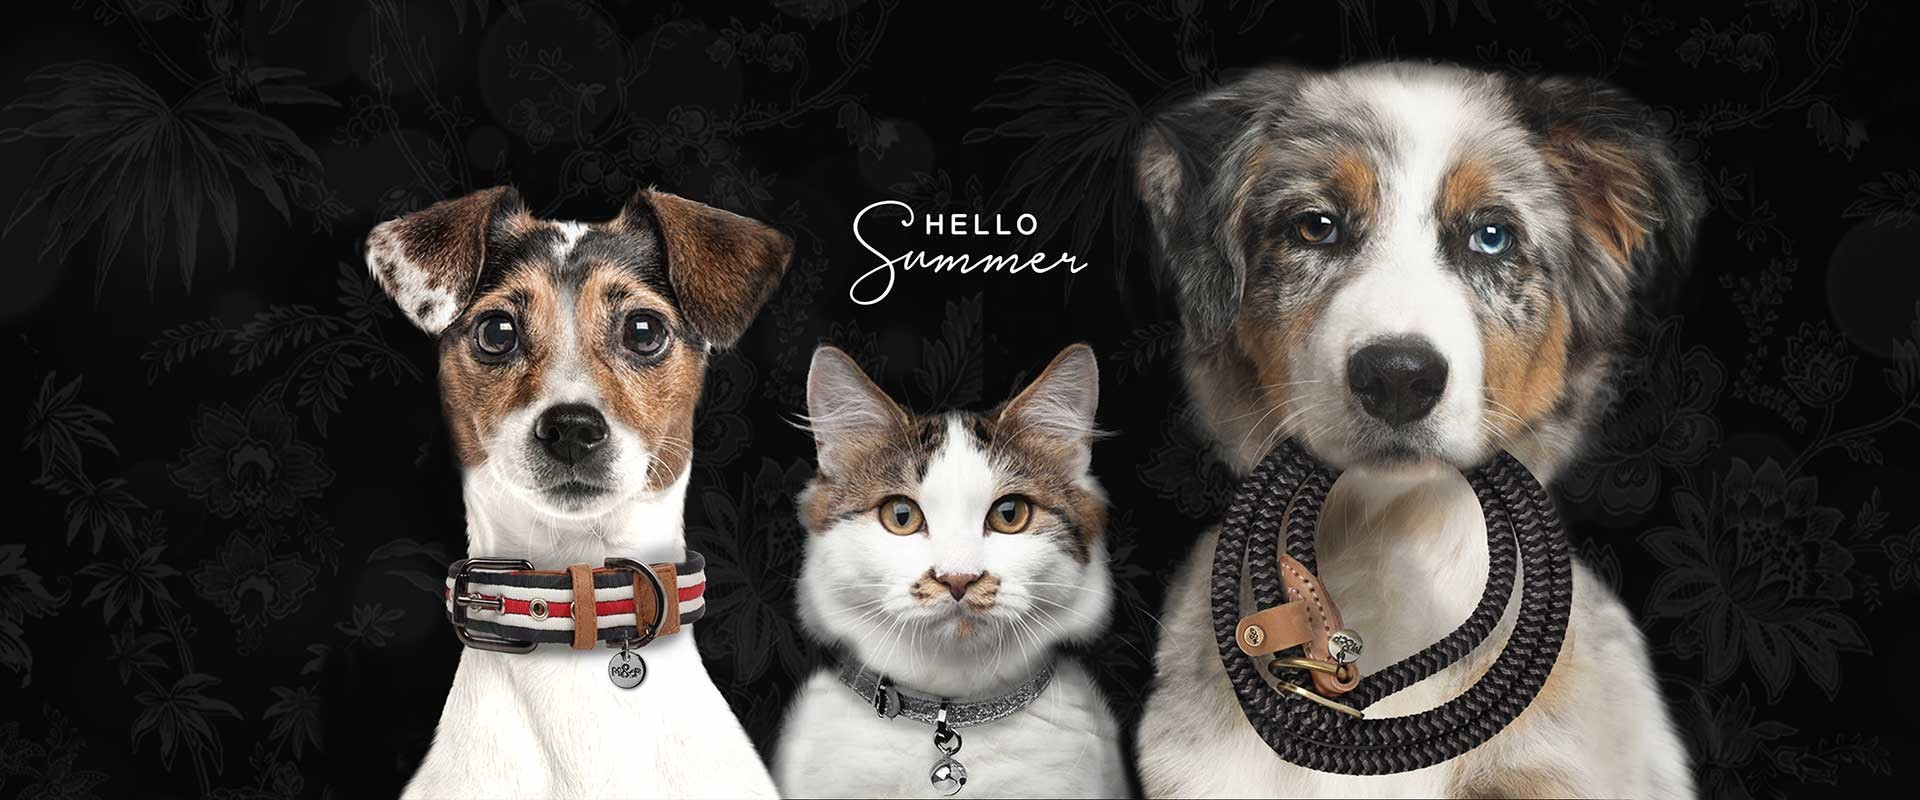 Milk & Pepper, Fashion And Accessories For Dogs & Cats -  Accessories Summer 2019